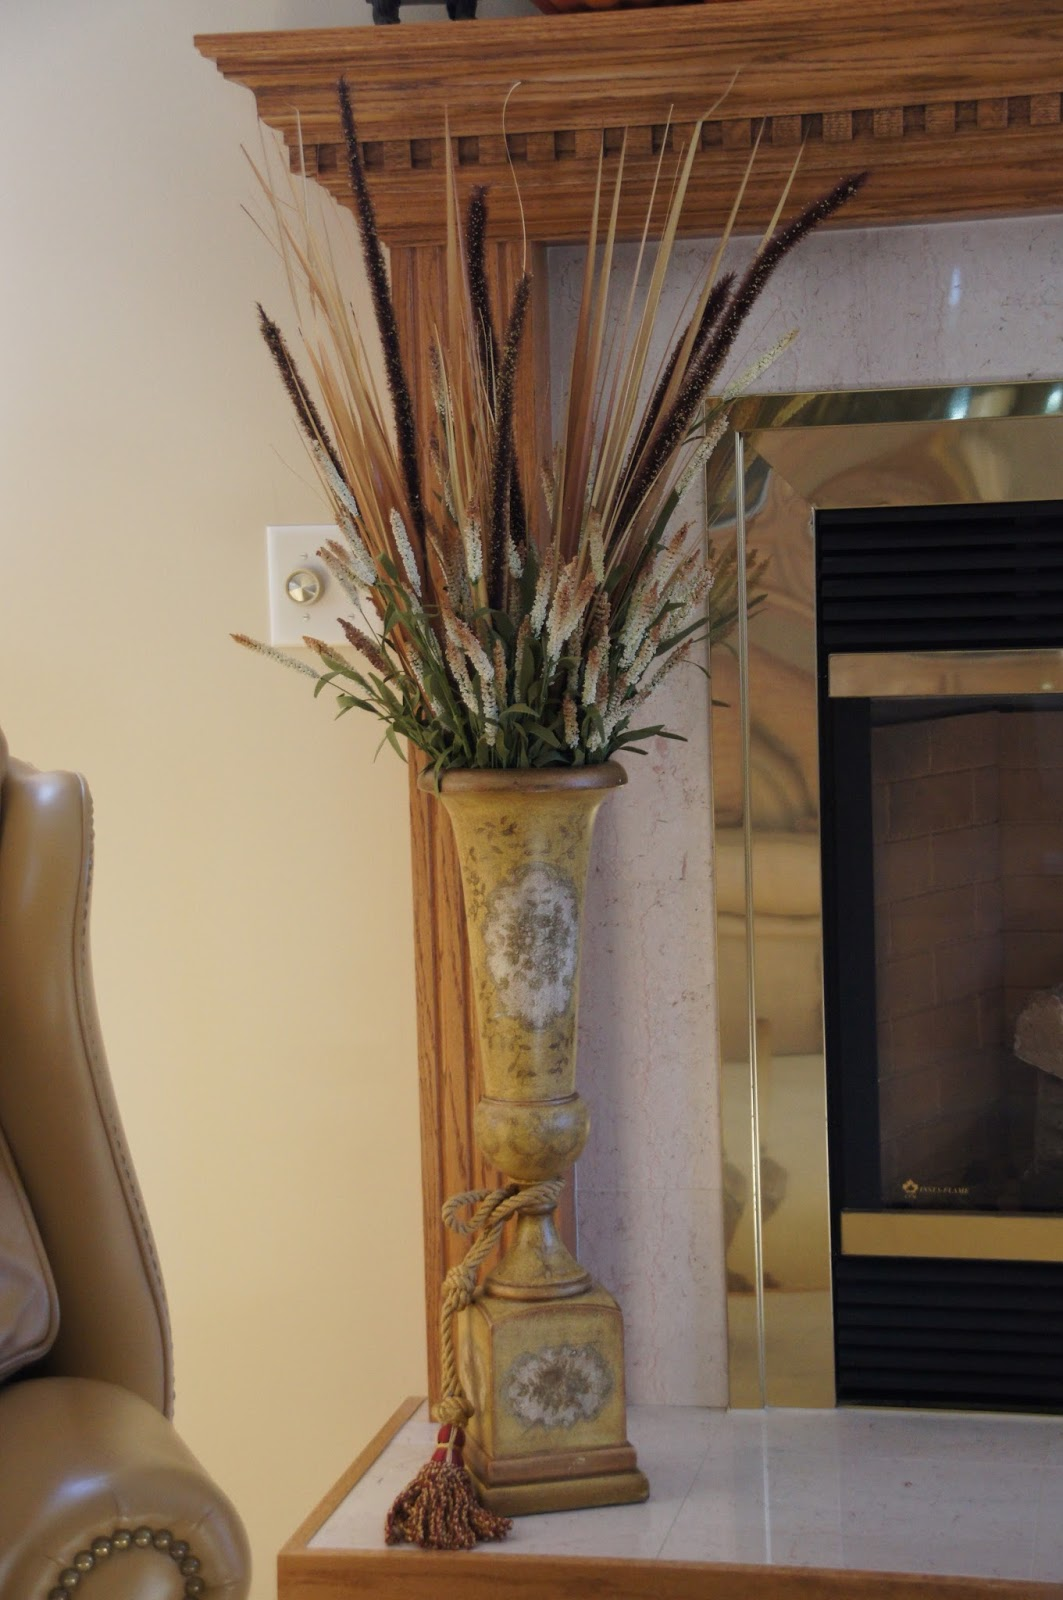 Home And Gardening With Liz Embracing Fall On The Mantel